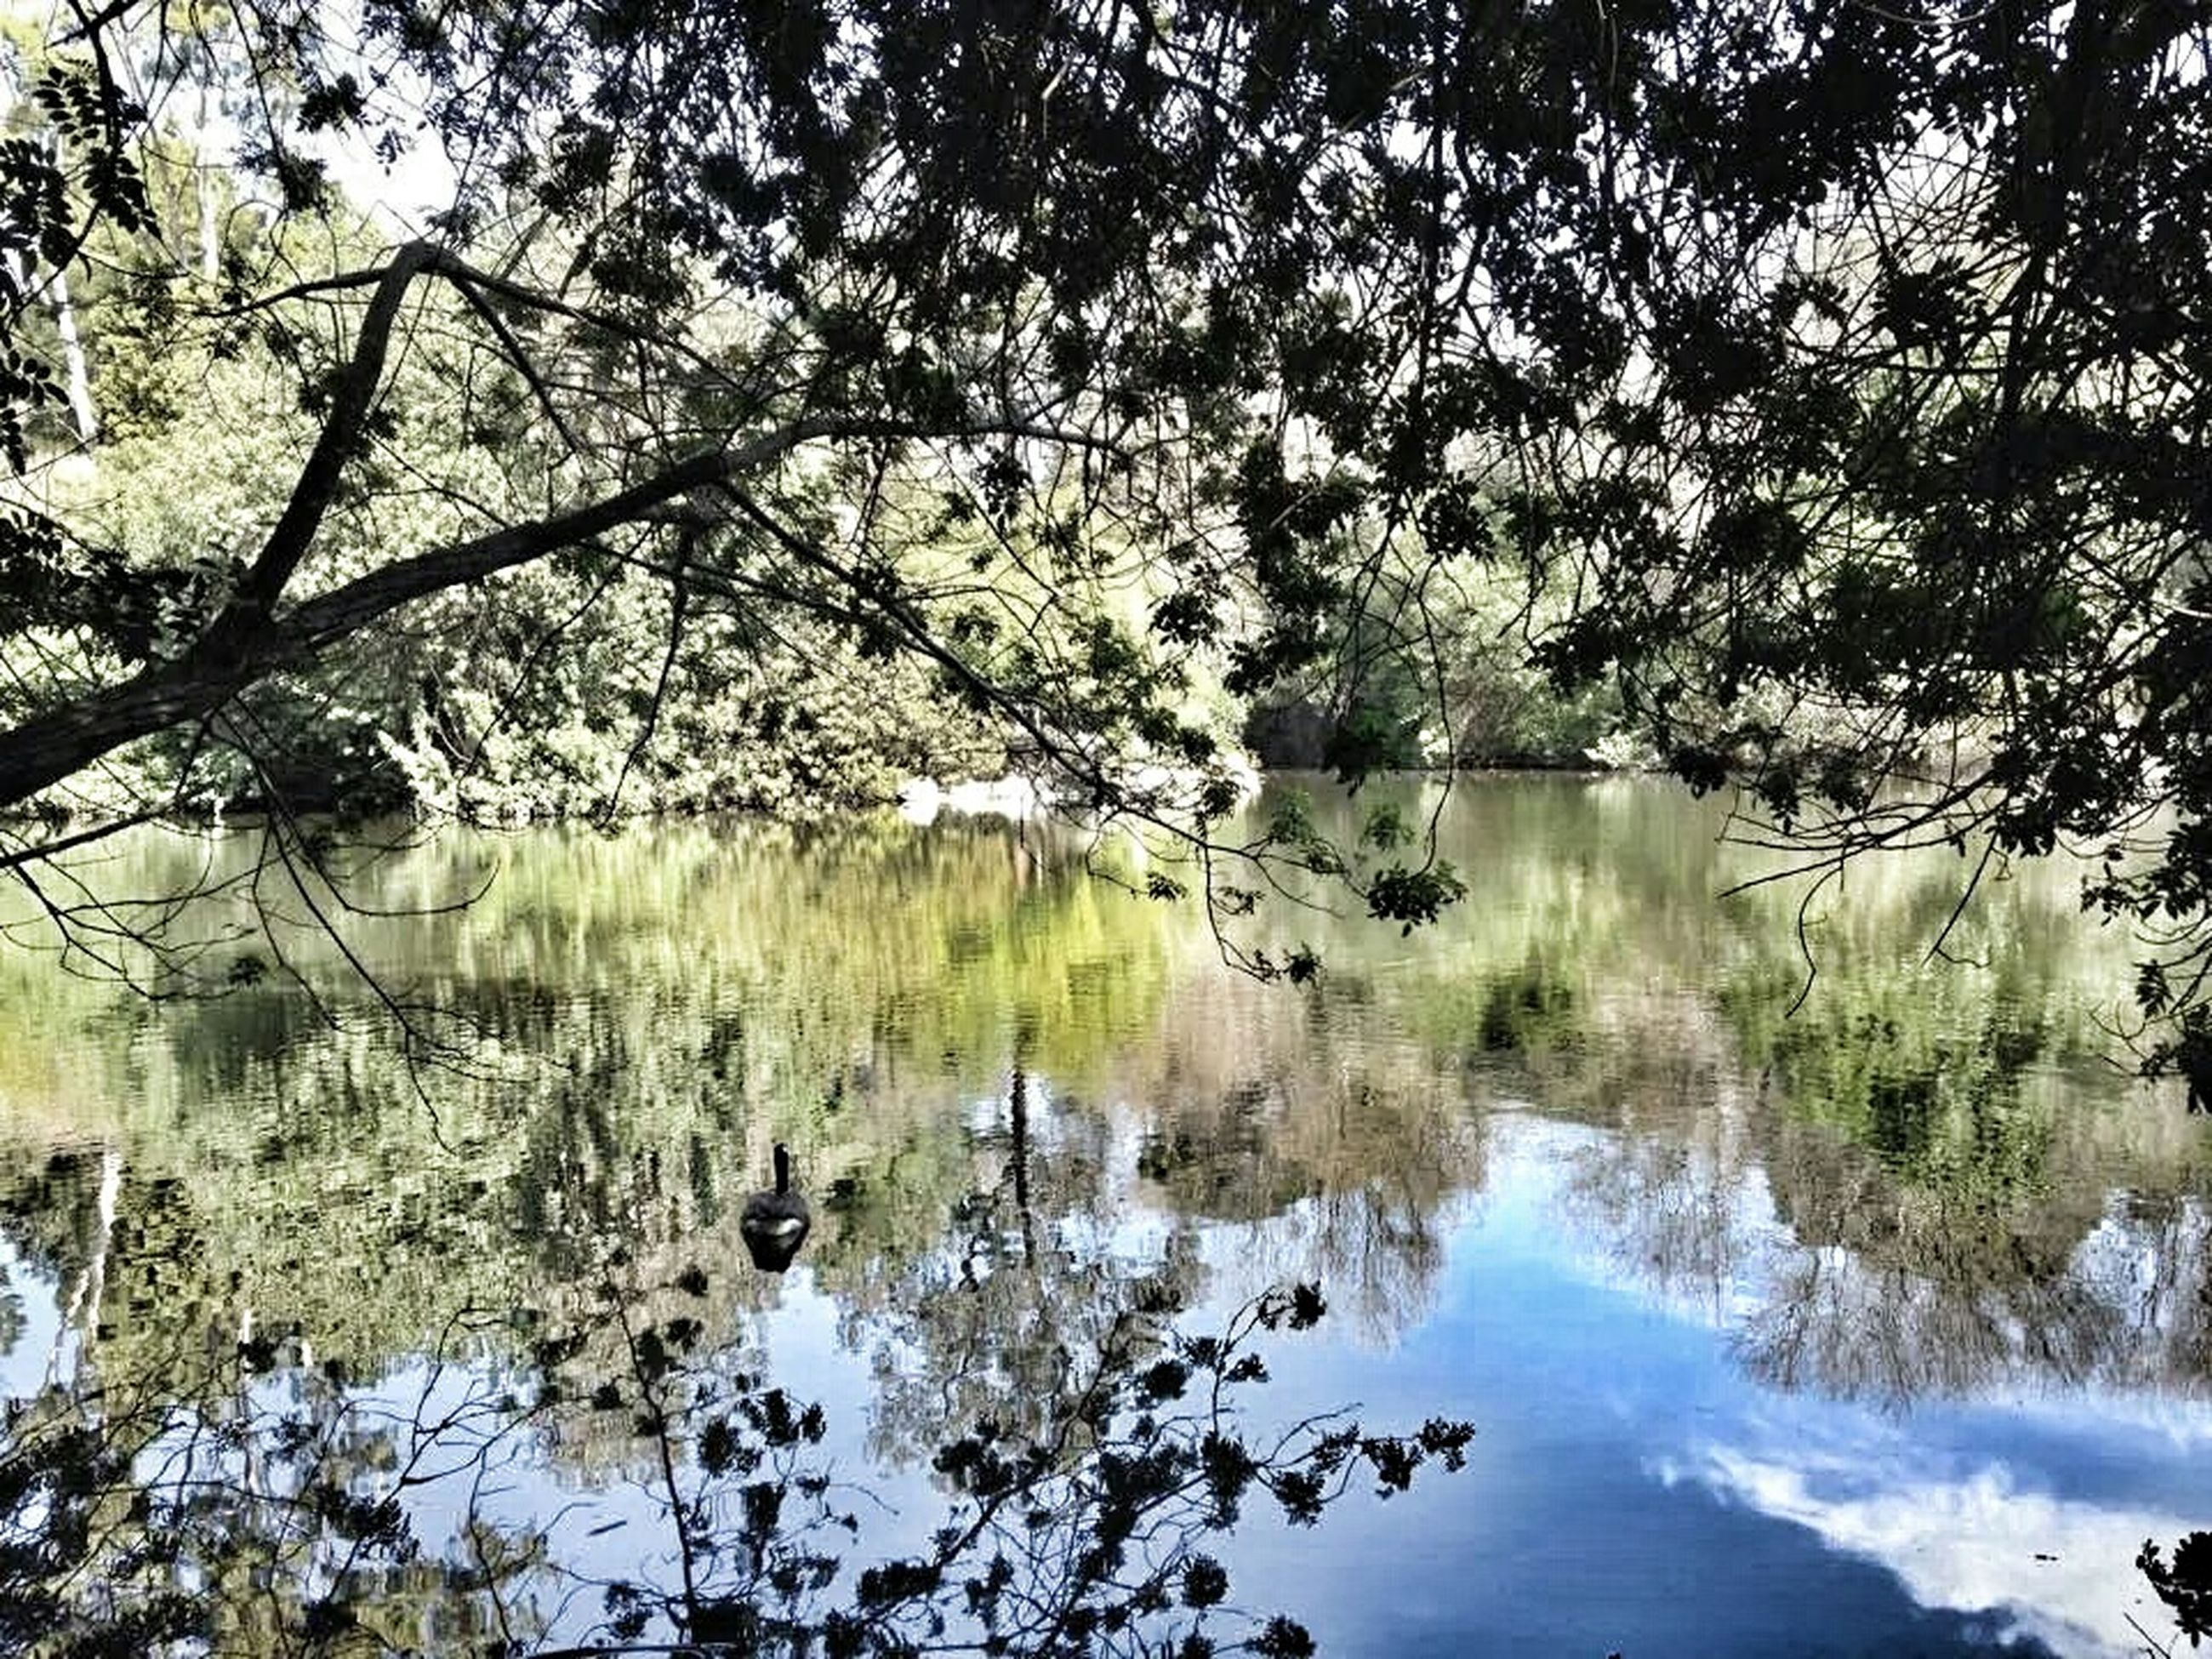 tree, tranquility, water, reflection, tranquil scene, beauty in nature, nature, lake, scenics, branch, growth, day, plant, river, idyllic, outdoors, no people, non-urban scene, sky, forest